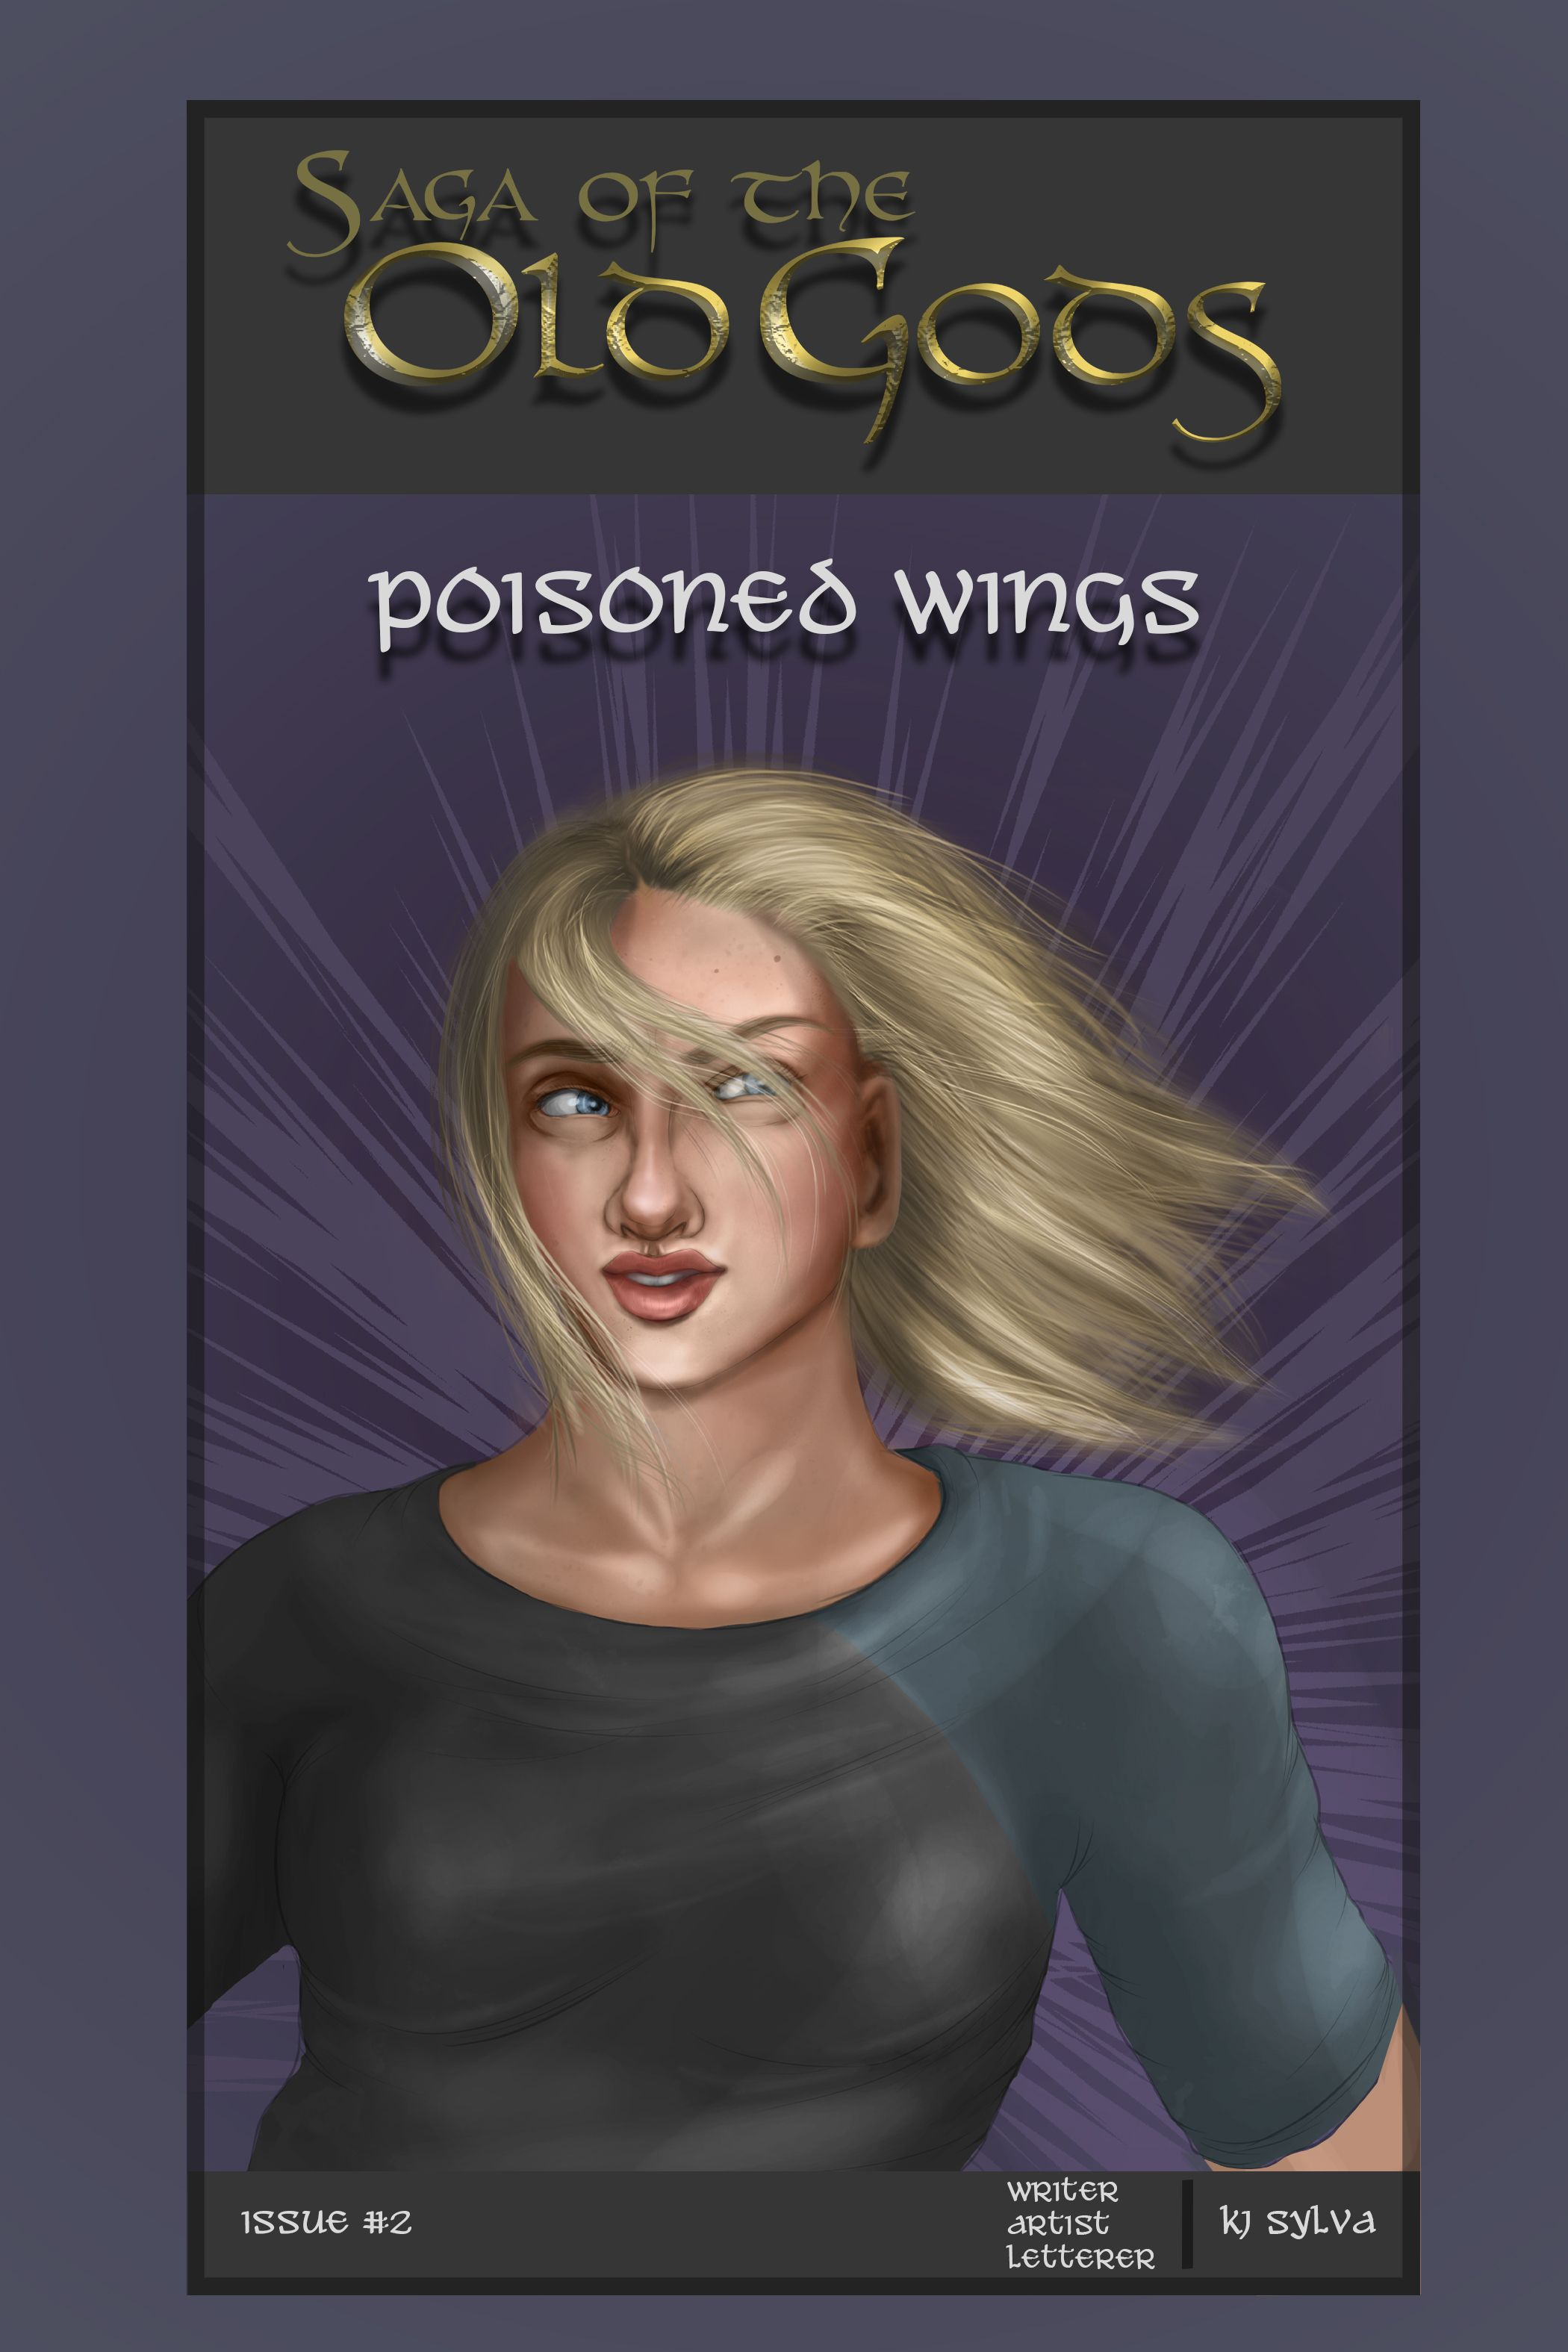 Chapter Two: Poisoned Wings